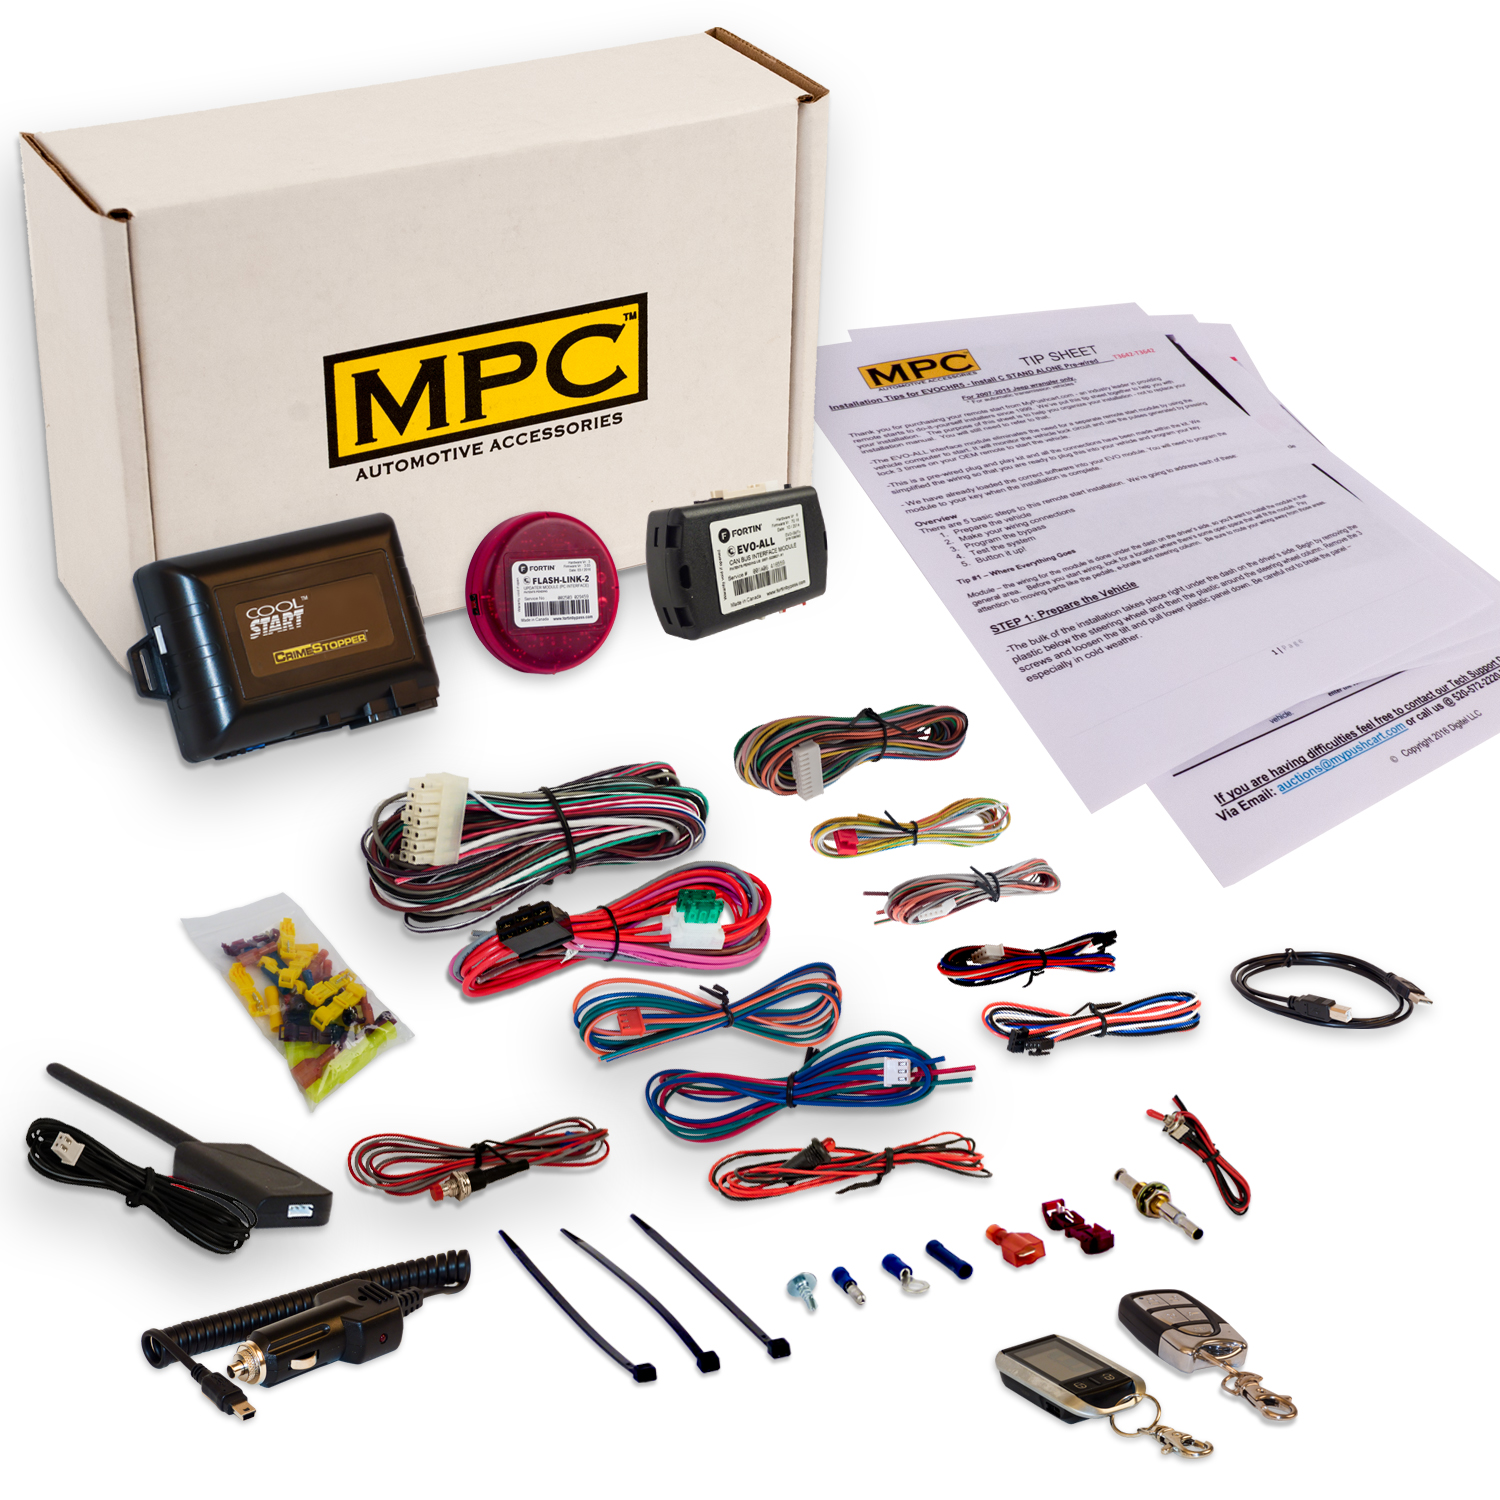 Complete 2-Way Remote Start Kit For 2014 Push-To-Start Honda Civic Automatic